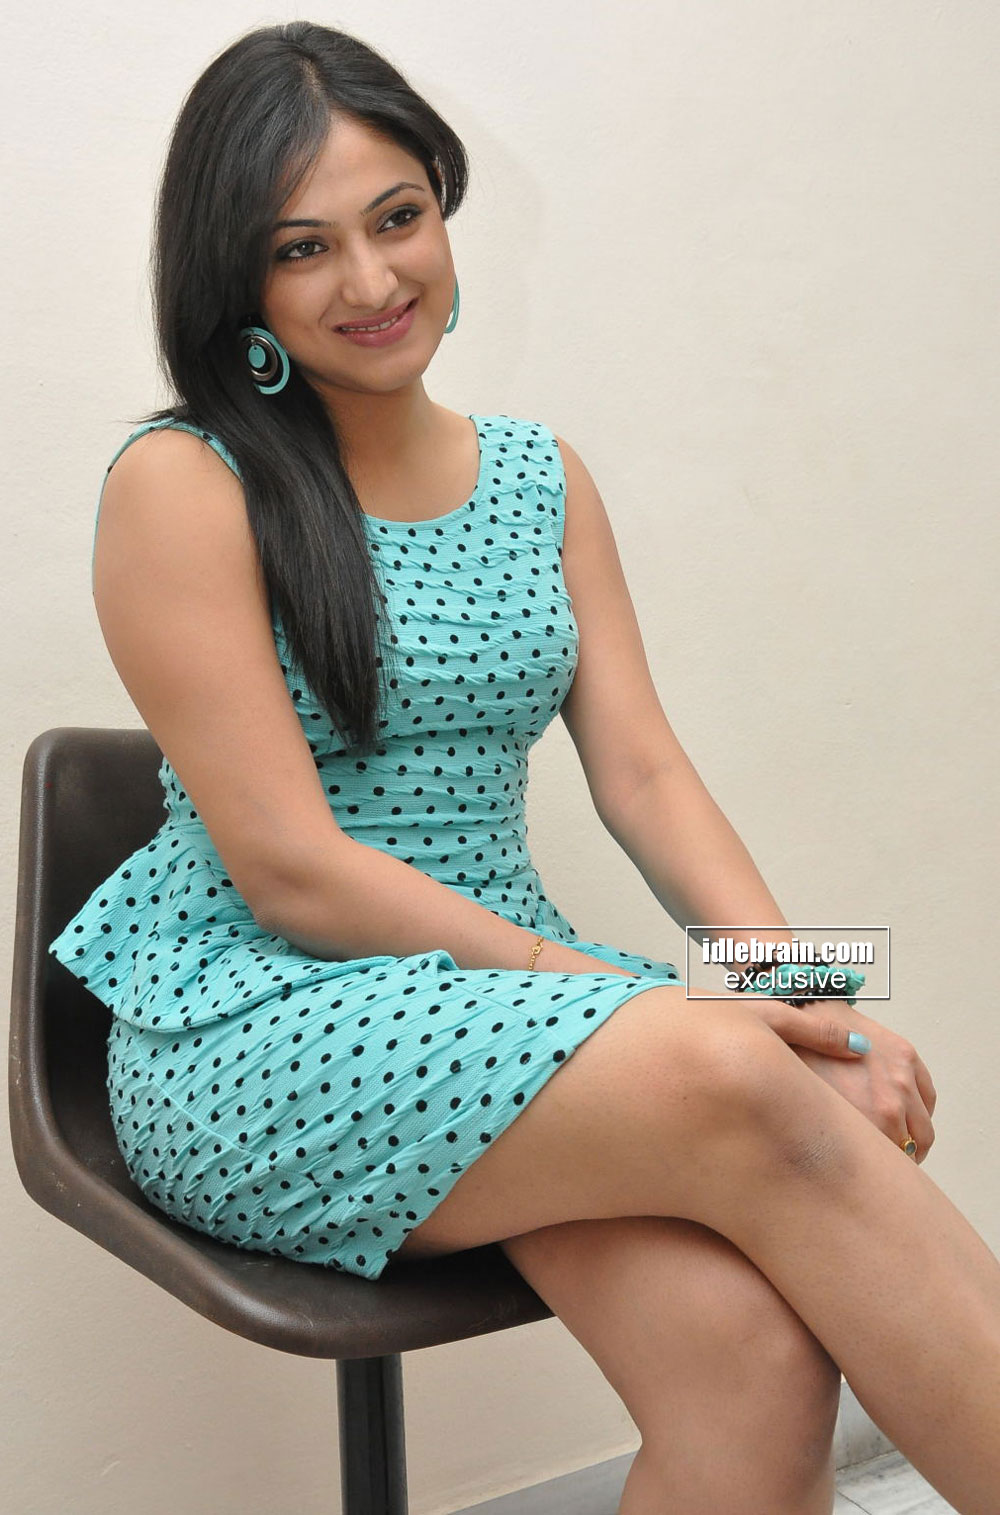 haripriya photo gallery telugu cinema actress. Black Bedroom Furniture Sets. Home Design Ideas